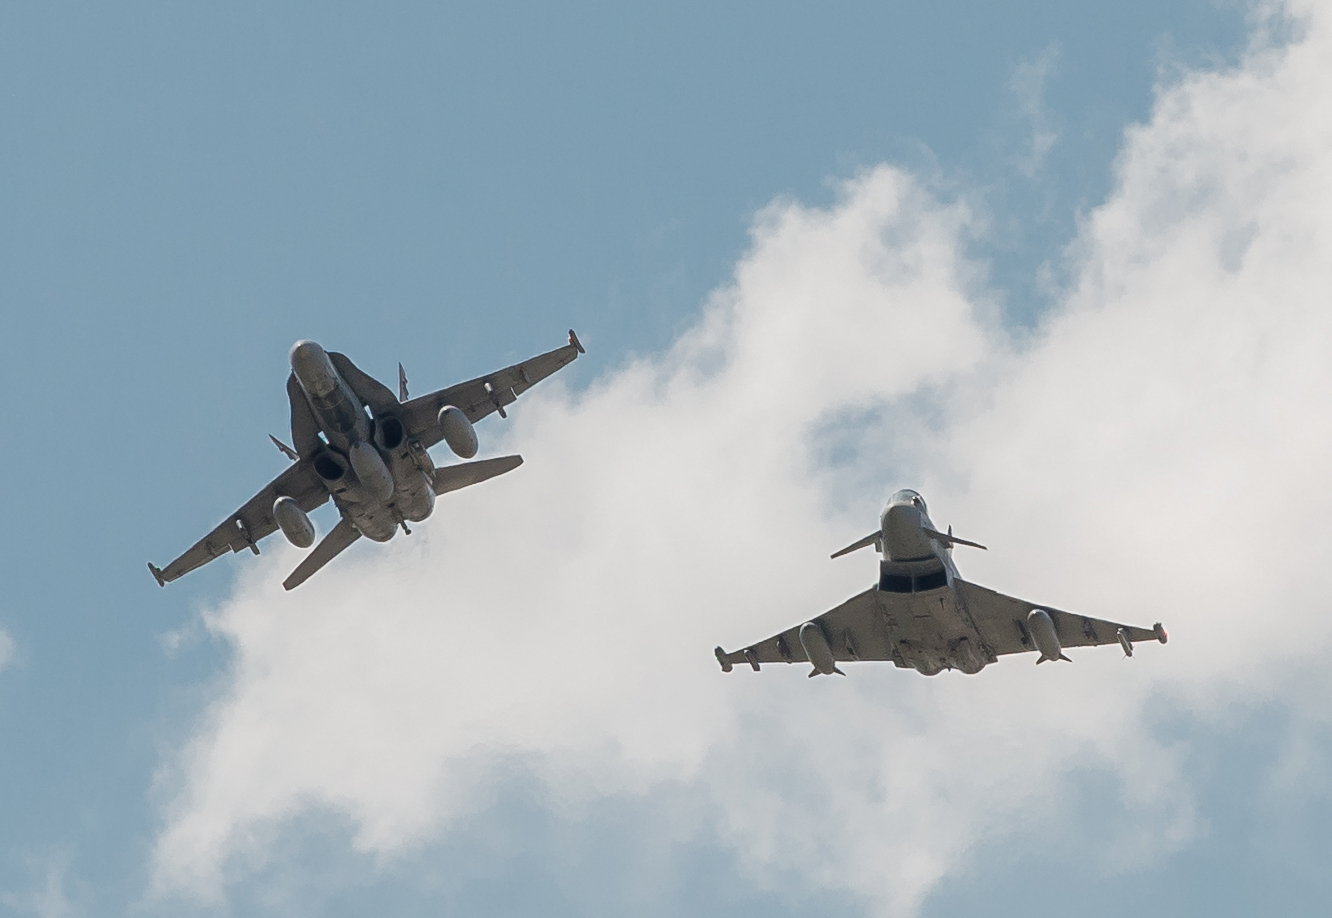 A Royal Canadian Air Force CF-188 Hornet and a Royal Air Force Typhoon FGR4 aircraft fly over Mihail Kogalniceanu Air Base, Constanta, Romania on August 23, 2017, during Operation Reassurance in support of NATO enhanced Air Policing. PHOTO: Sergeant Daren Kraus RP14-2017-0010-01